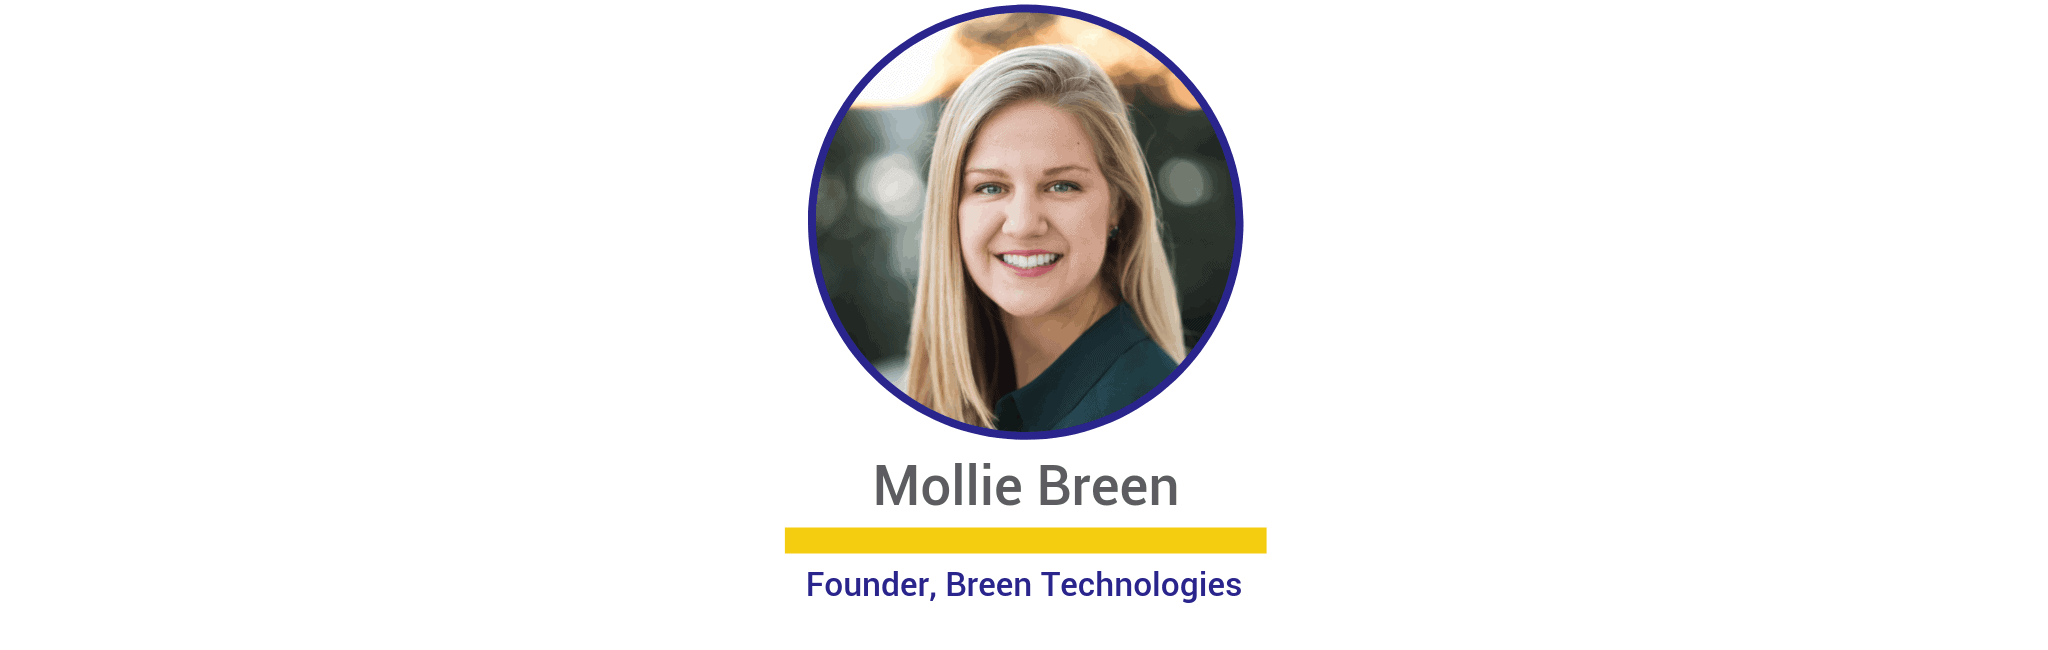 Mollie Breen, Founder of Breen Technologies, Securing the Internet of Things